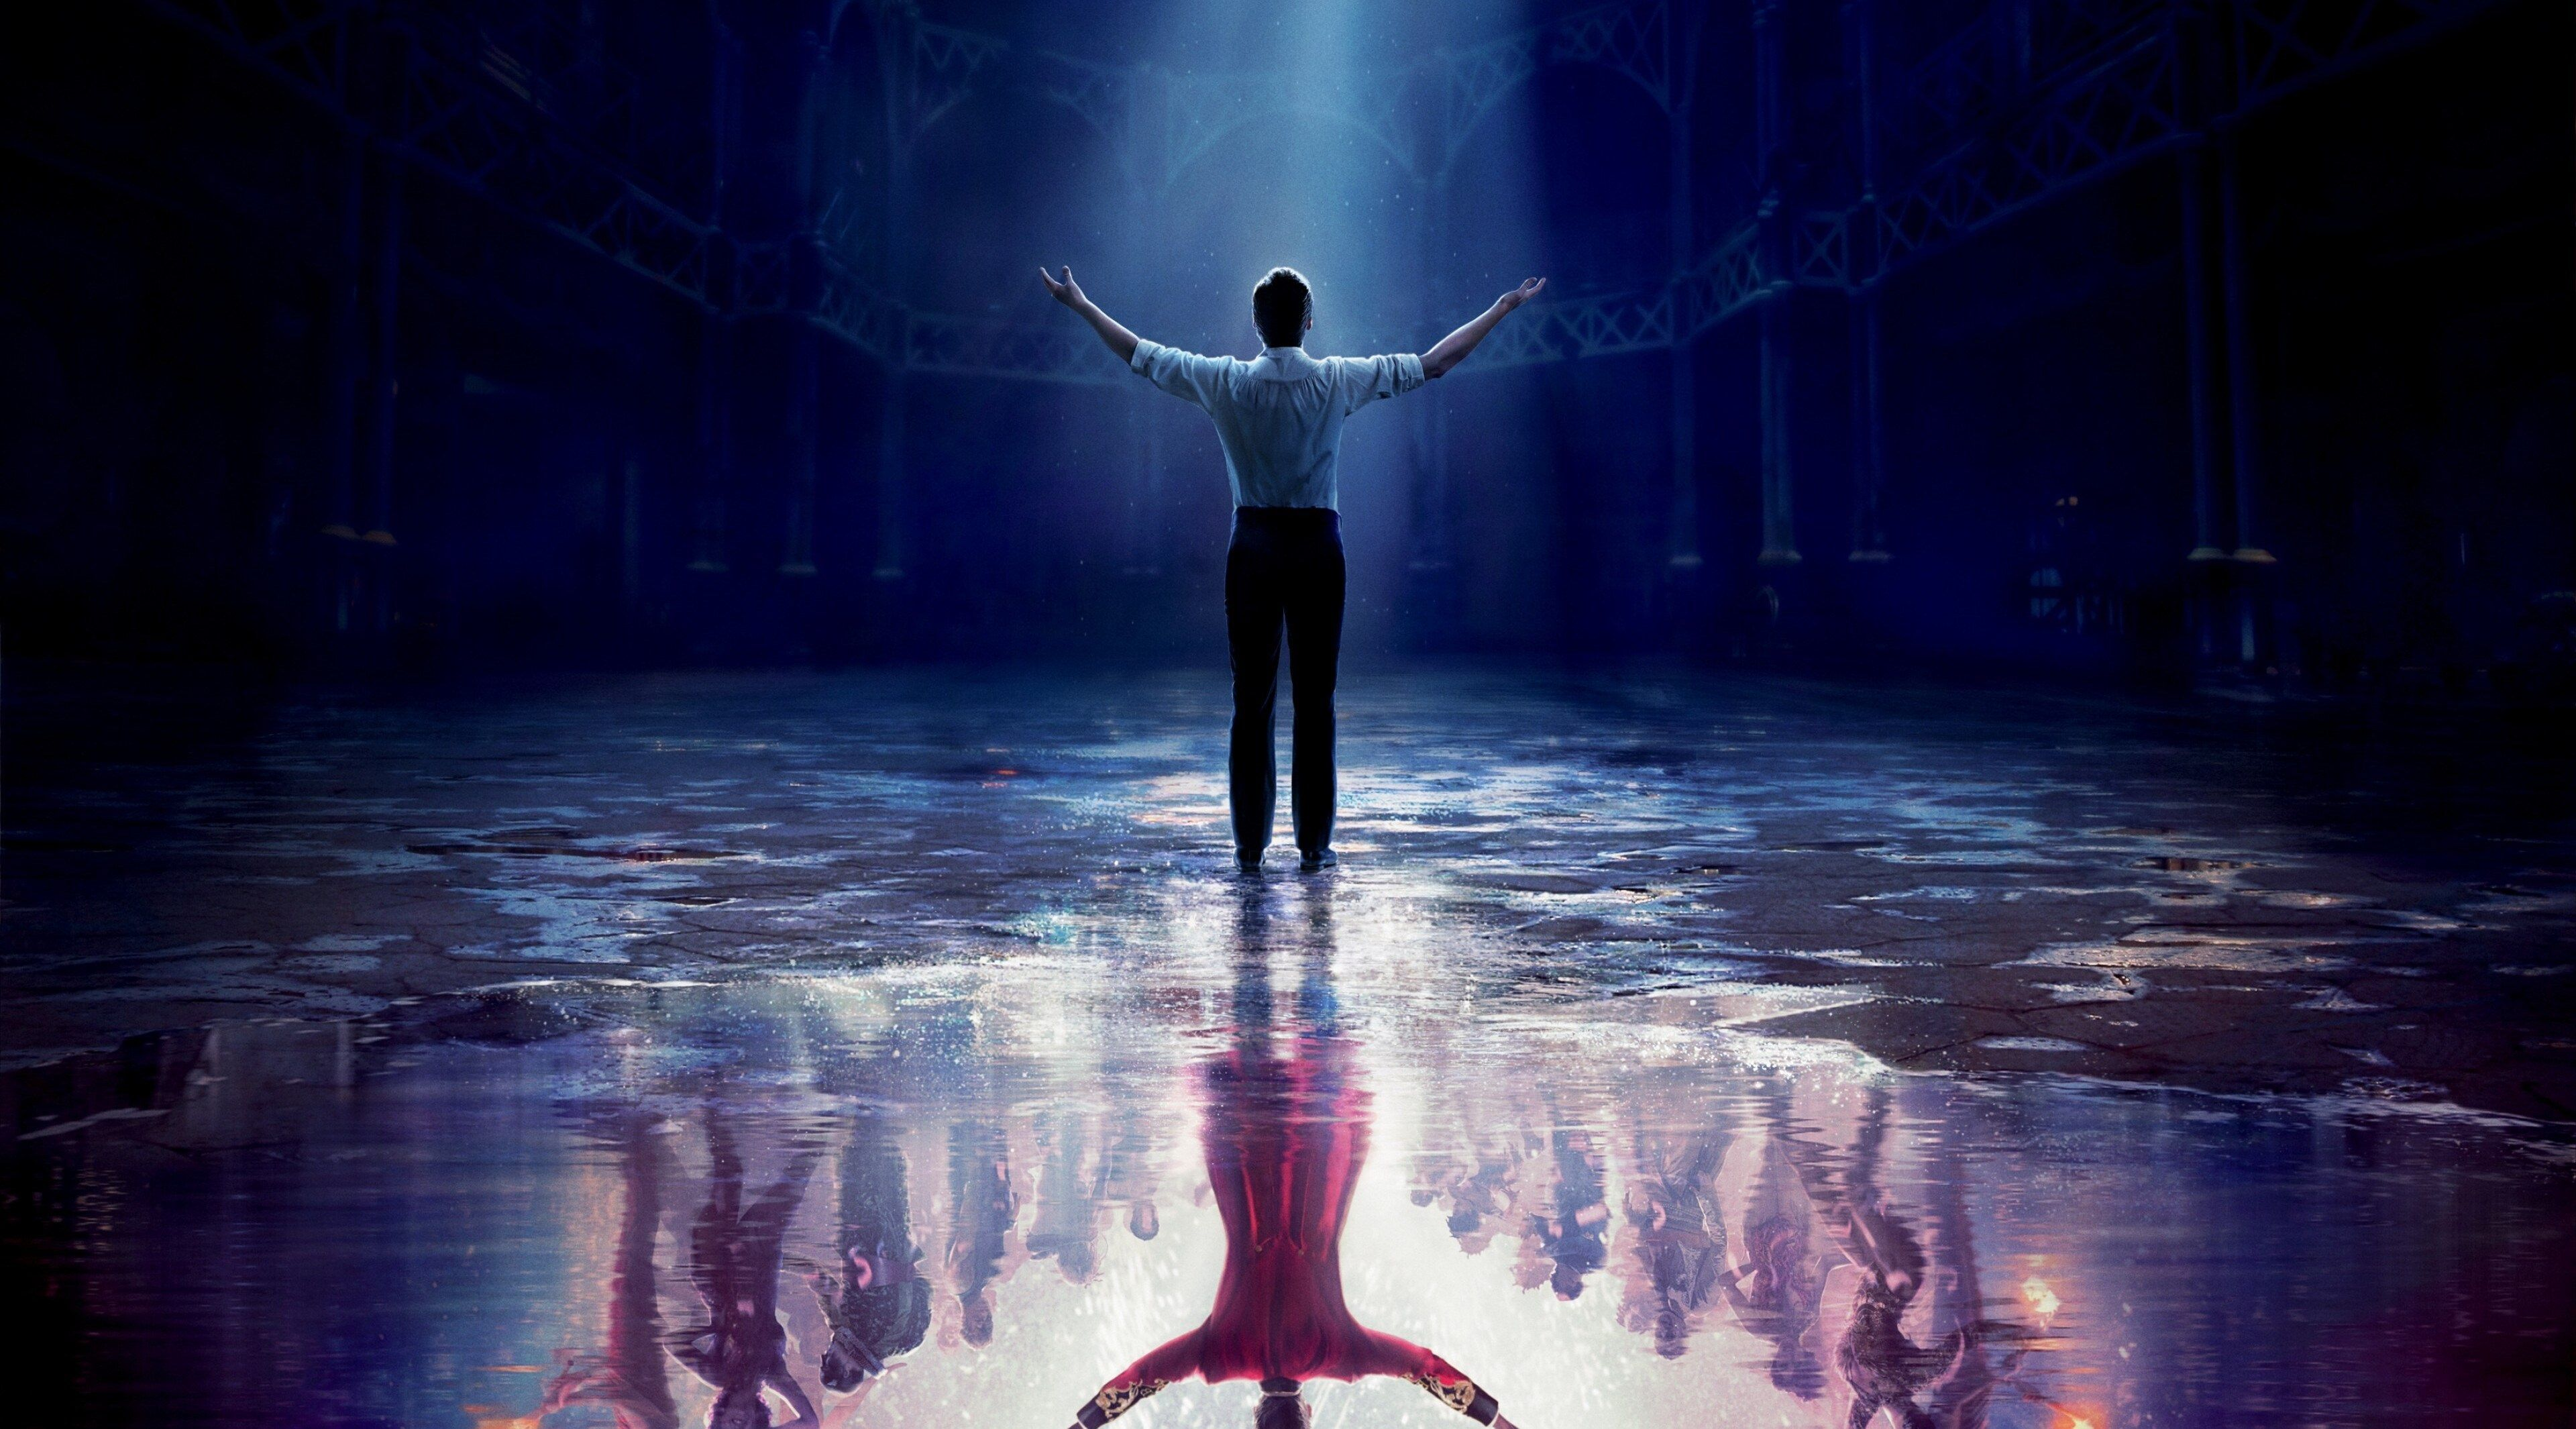 3840x2130 The Greatest Showman 4k Full Hd Free Wallpaper The